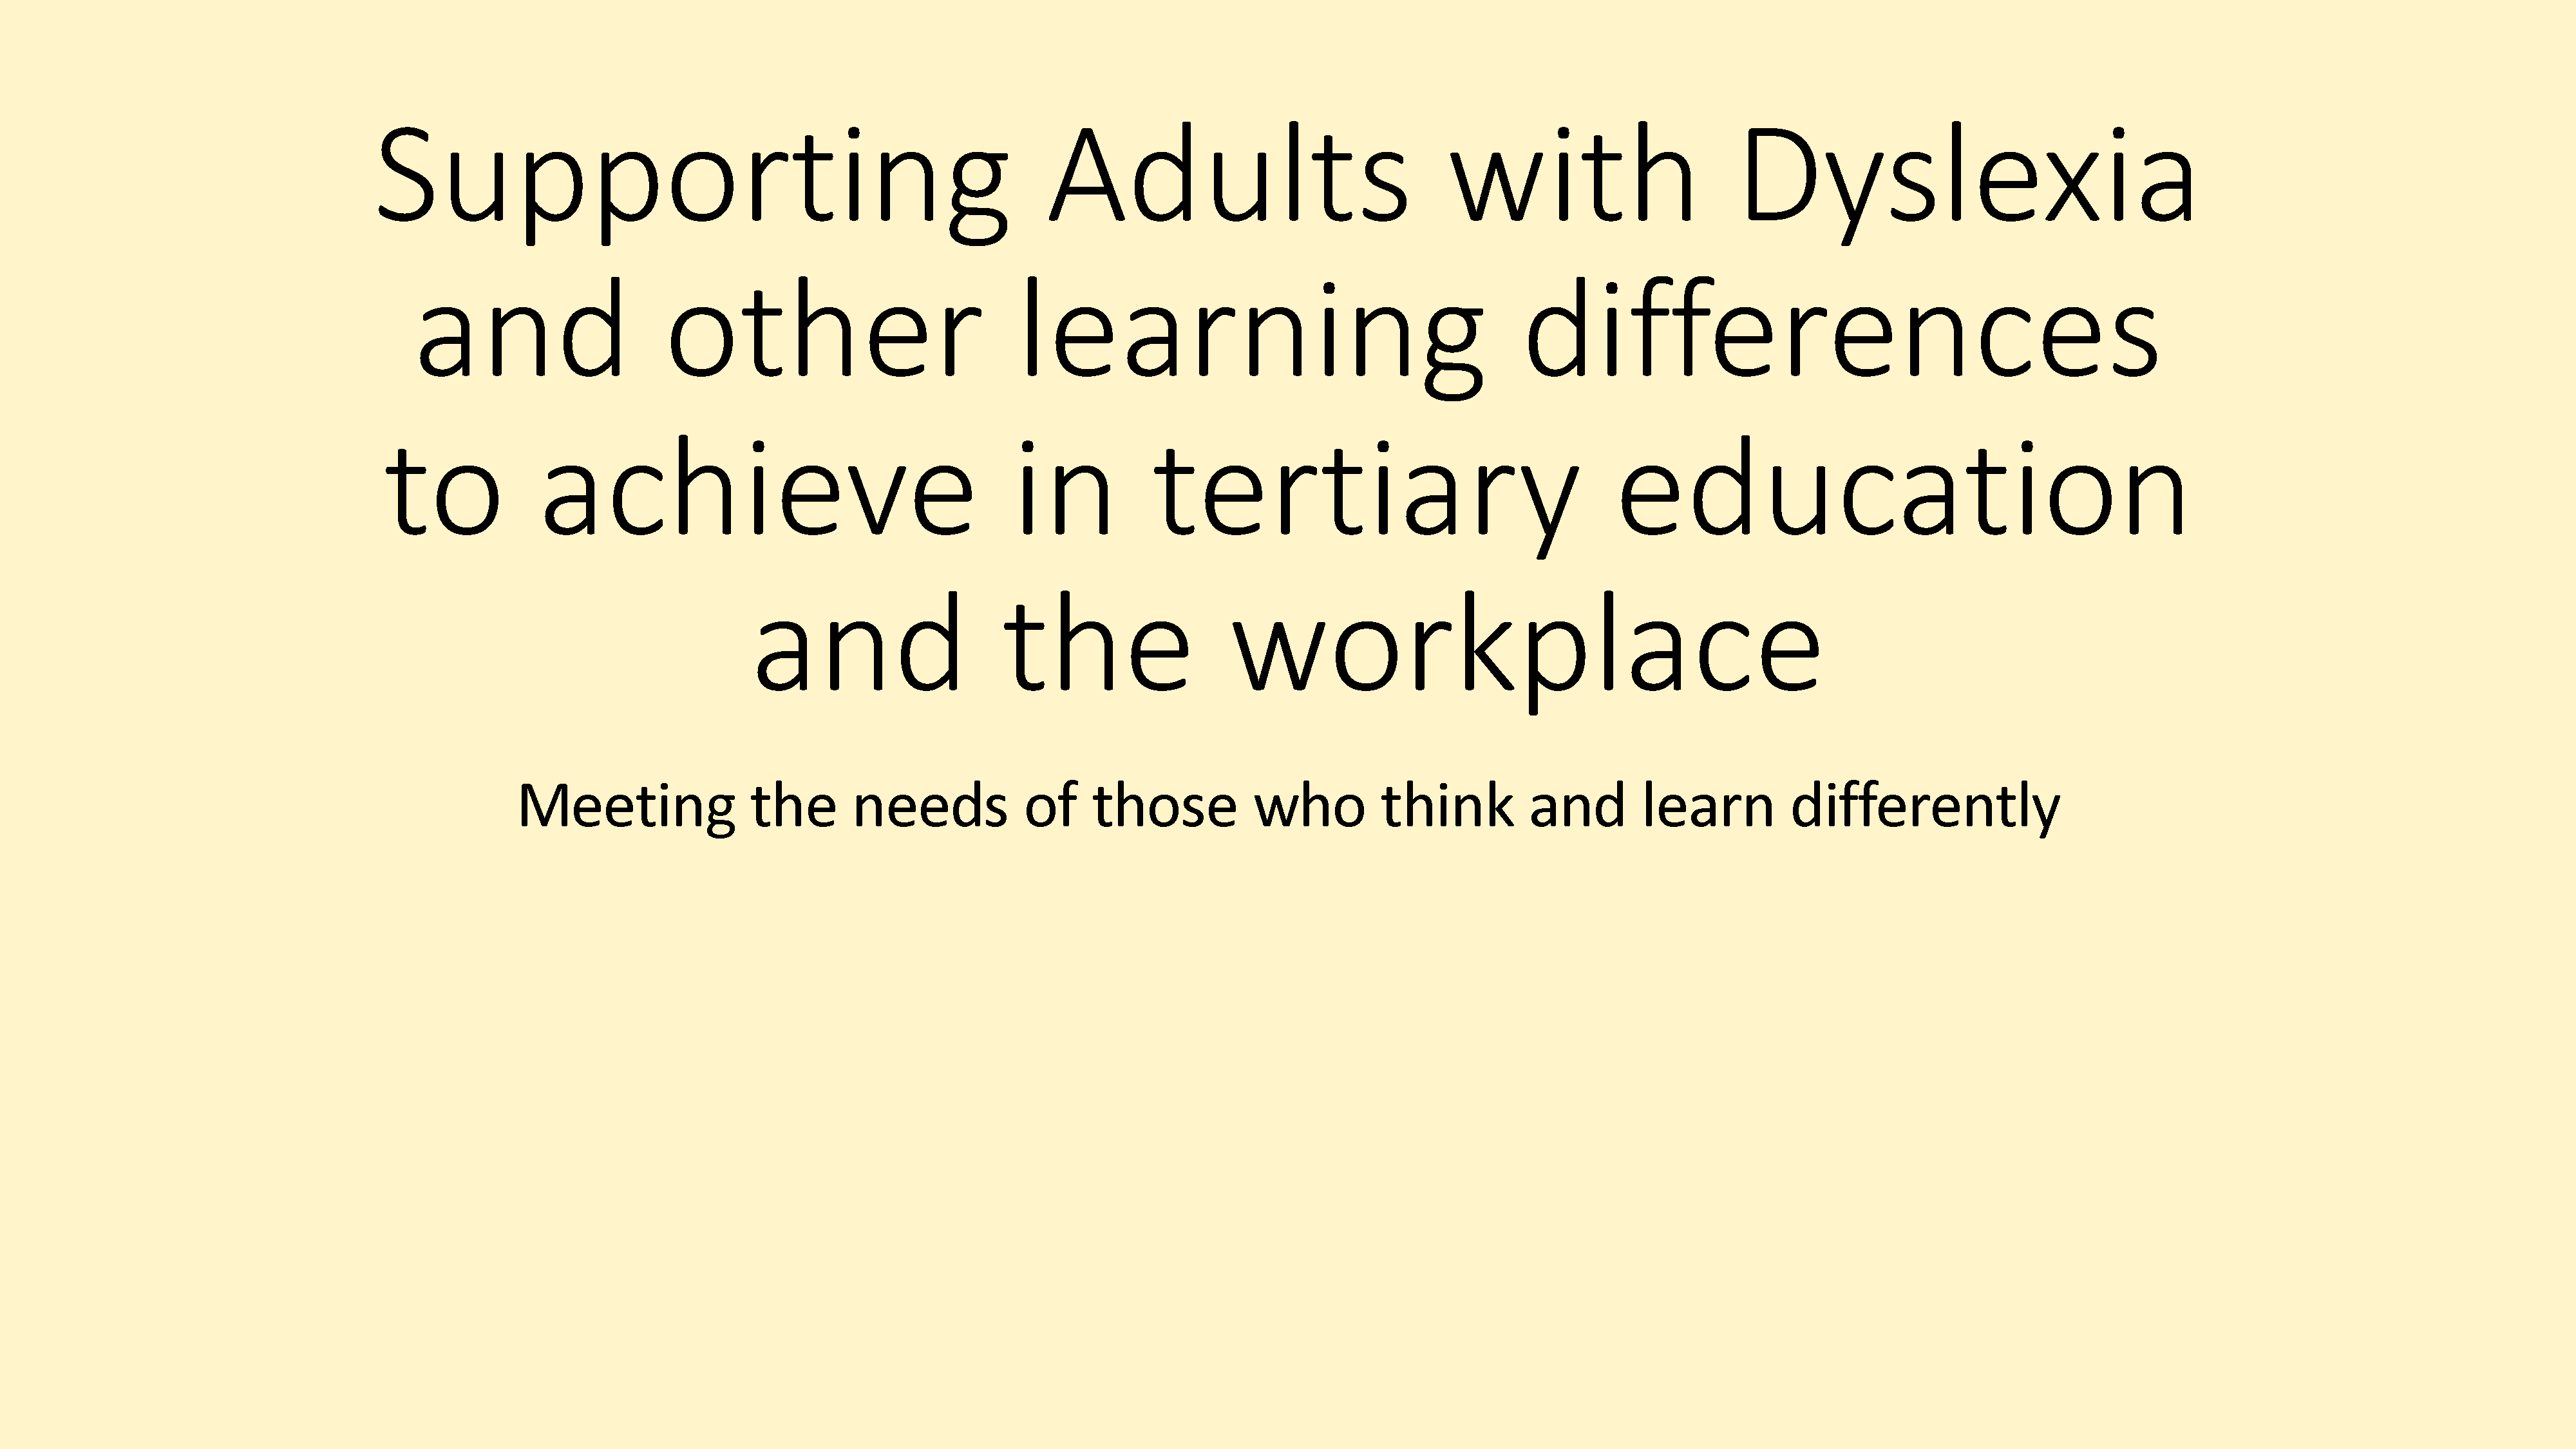 Dyslexia adults workplace